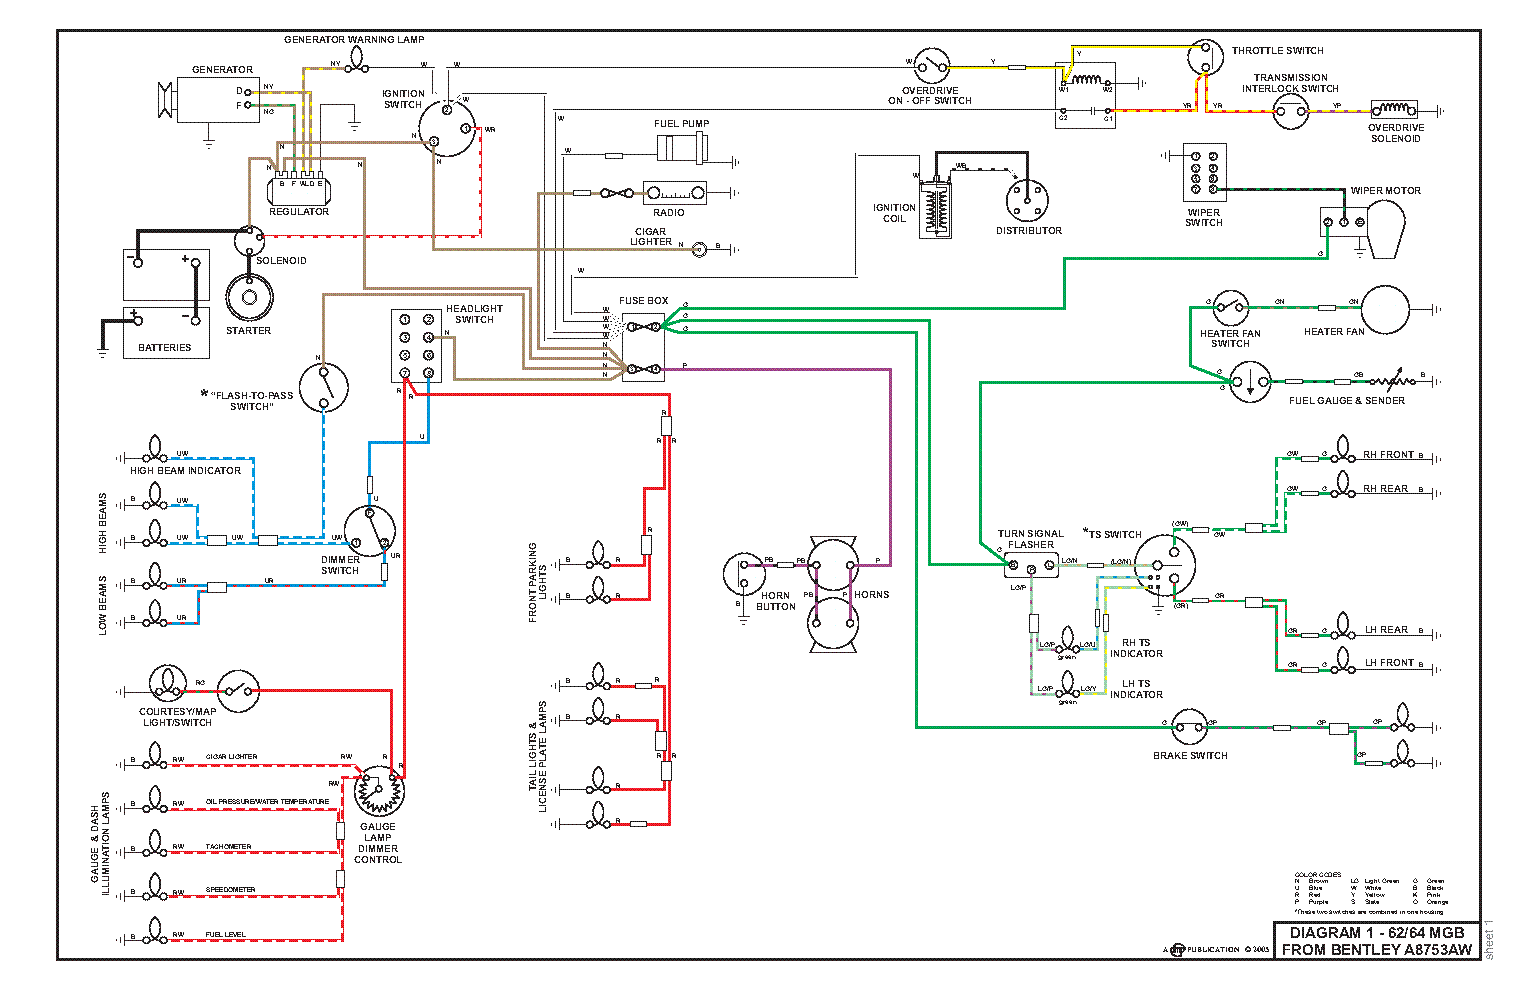 bentley_mg_b_car_wiring_diagrams.pdf_1 free automotive wiring diagrams free plymouth wiring diagrams automotive diagrams at gsmportal.co